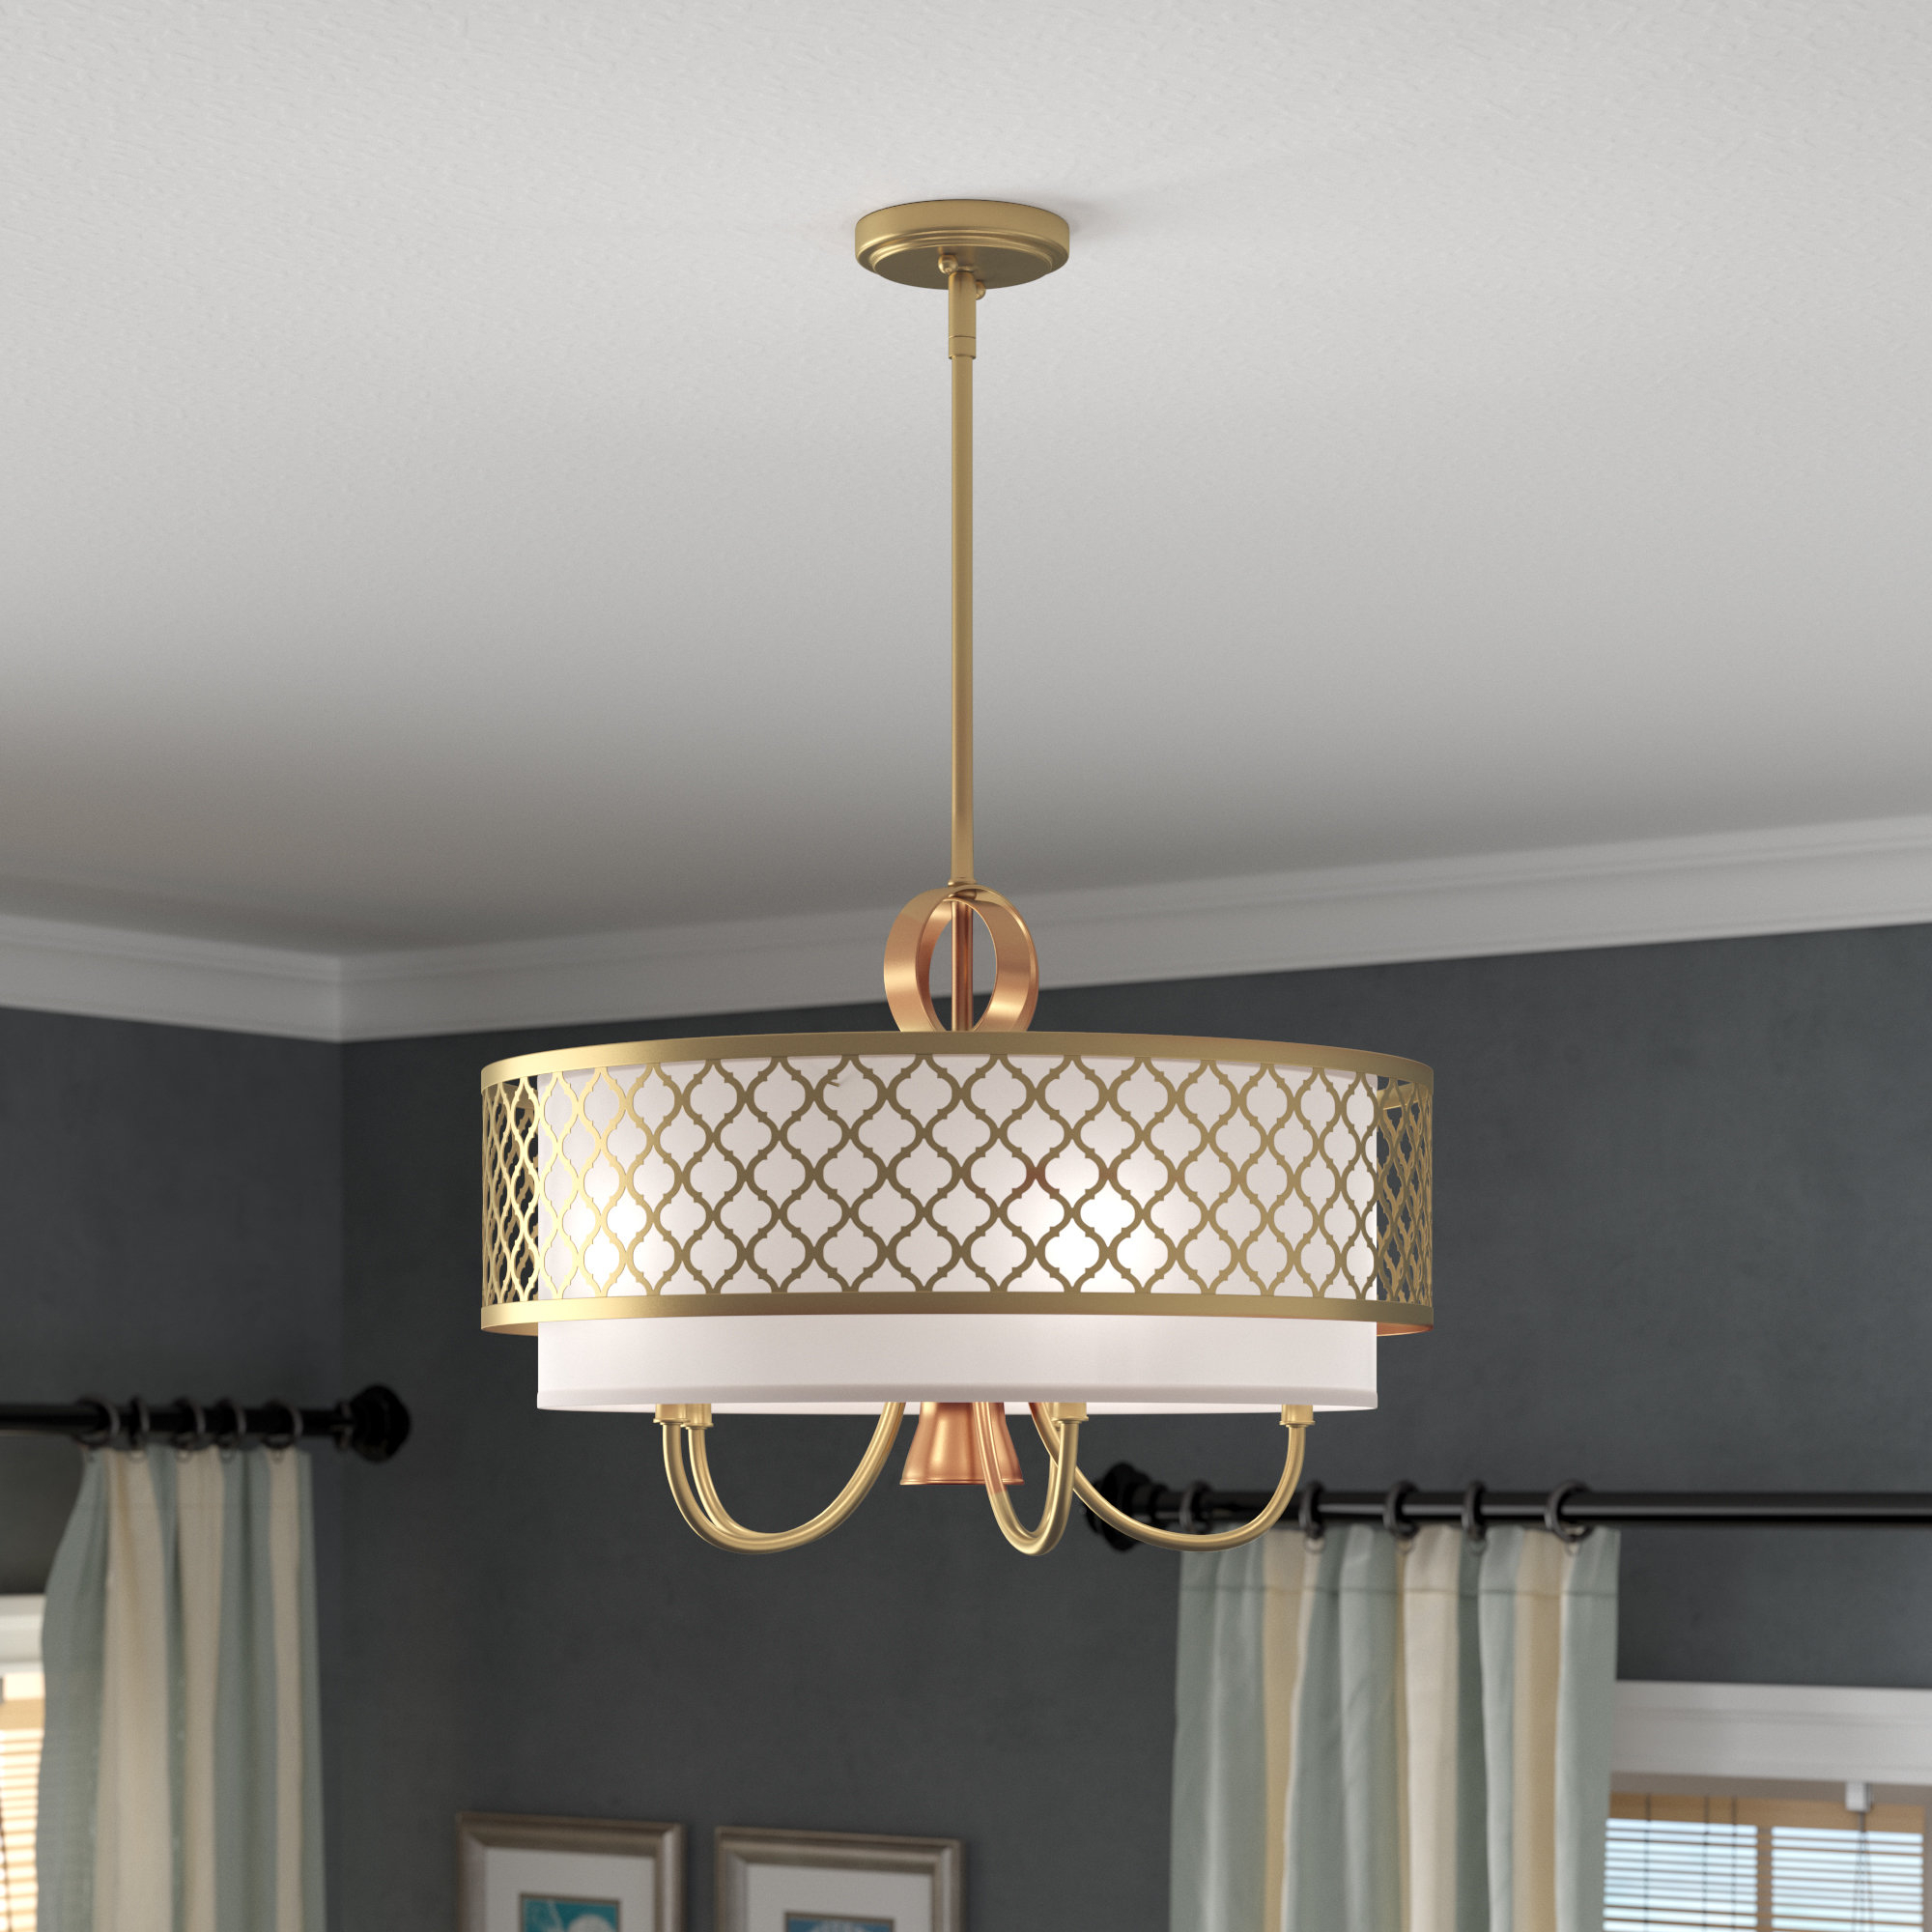 Tymvou 5 Light Drum Chandelier In Widely Used Abel 5 Light Drum Chandeliers (View 17 of 20)